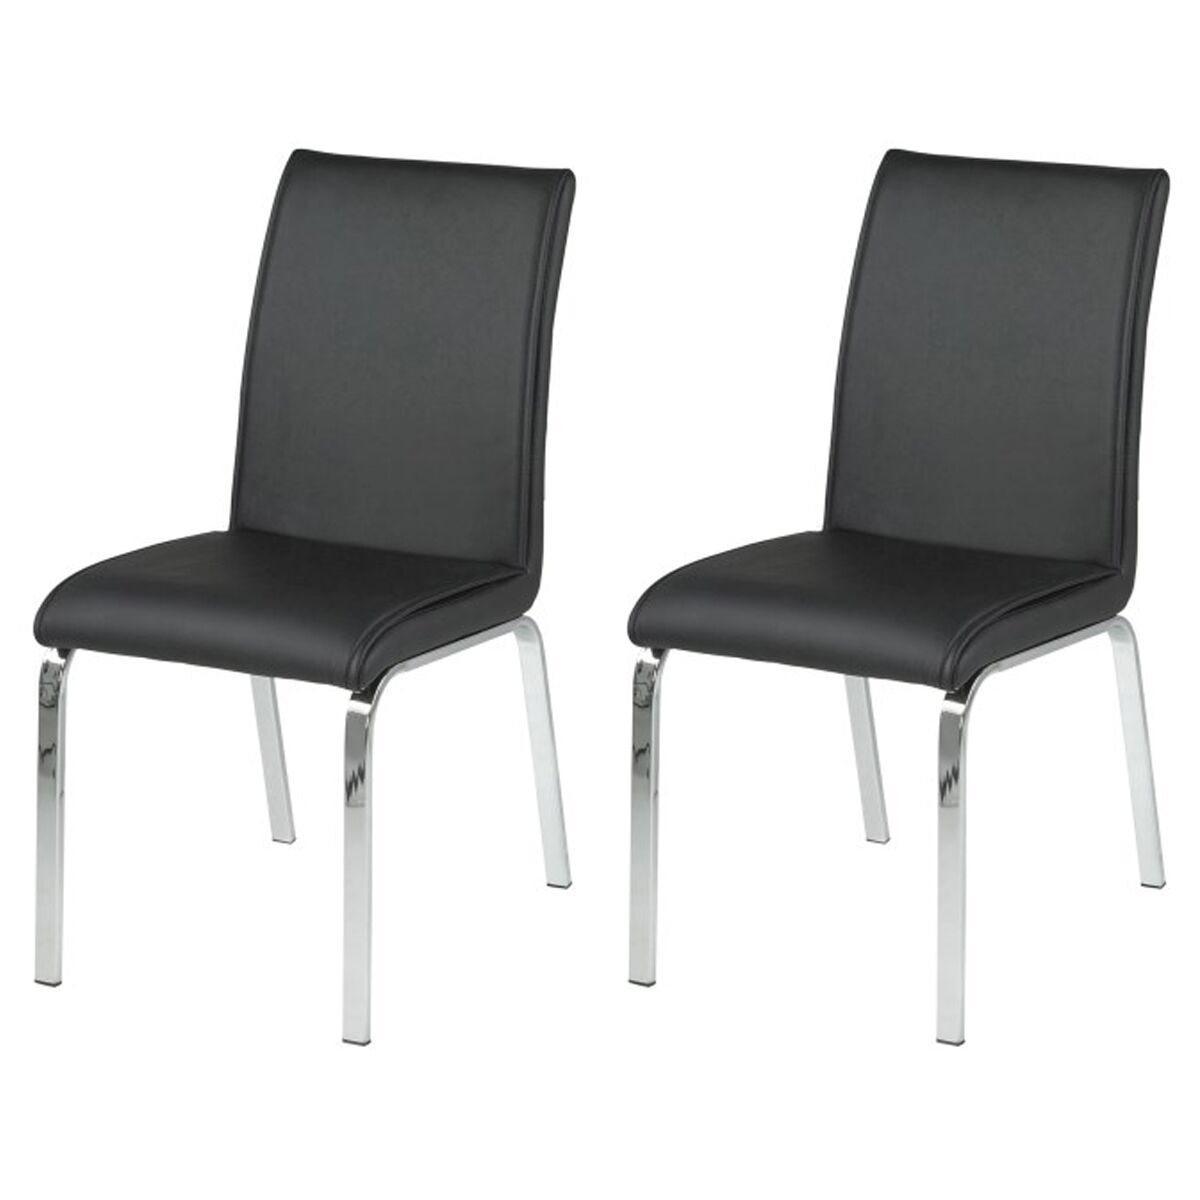 Leonora Black Faux Leather Dining Chairs Dining Chairs